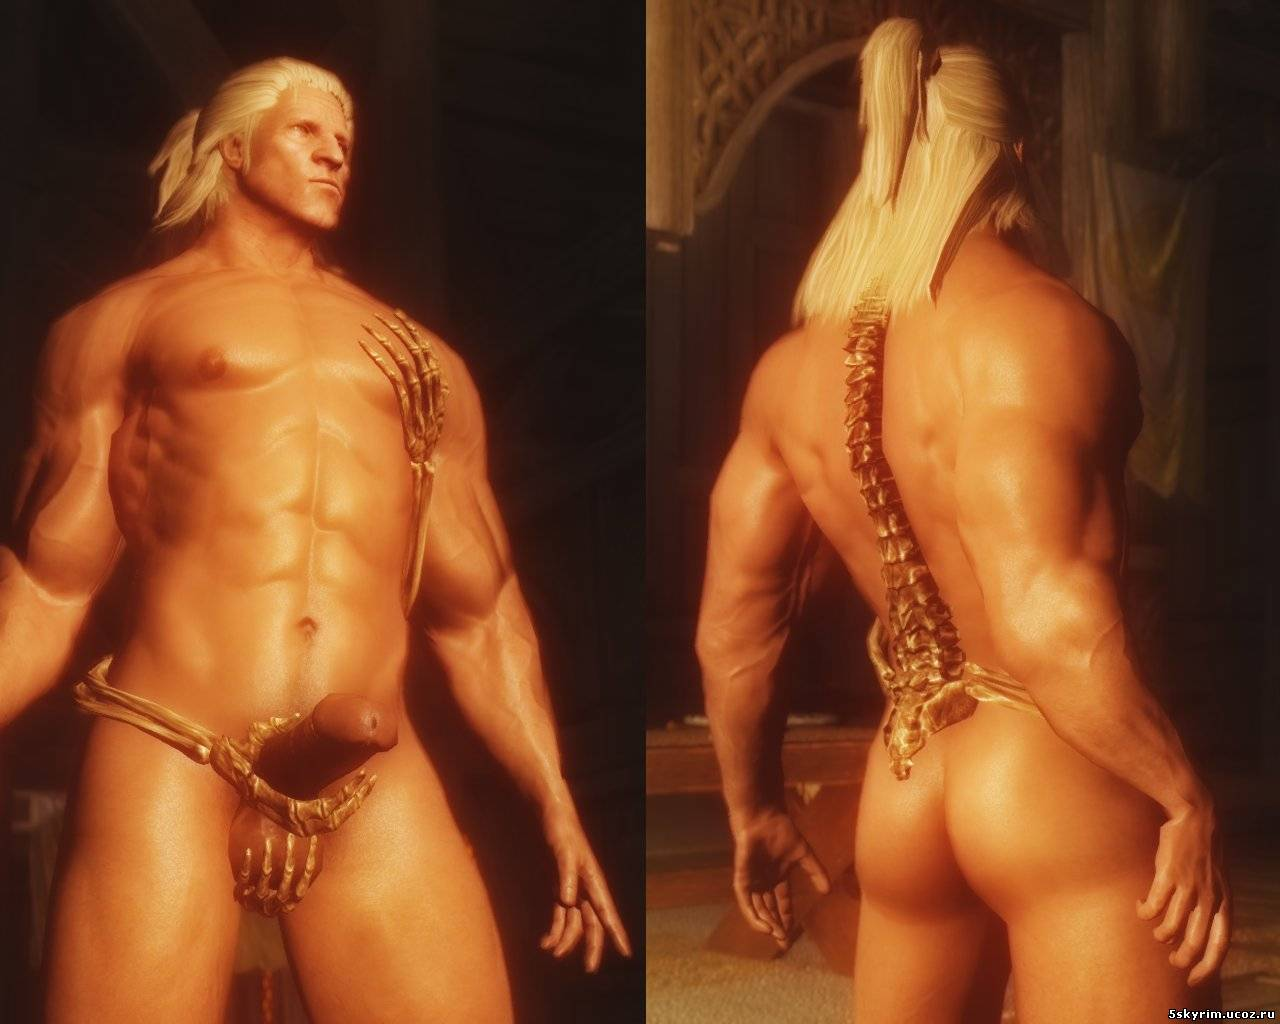 Gta 4 nude mod male nudes film